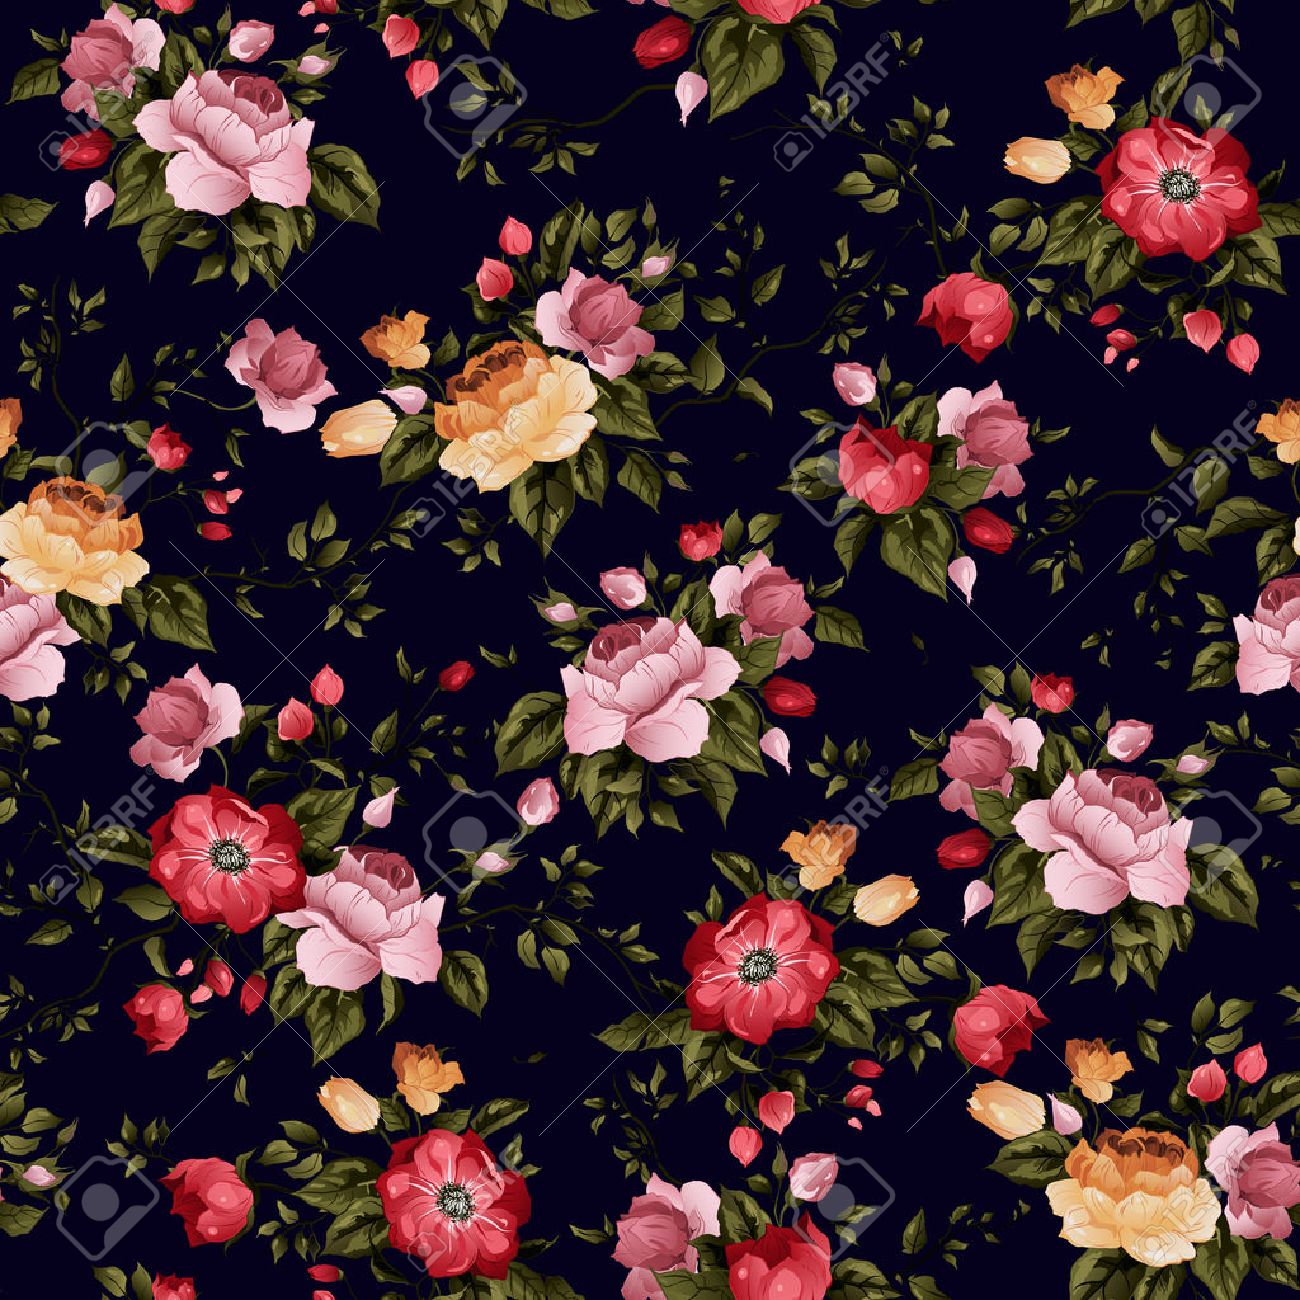 Seamless floral pattern with of roses on dark background, watercolor Vector illustration - 28213334